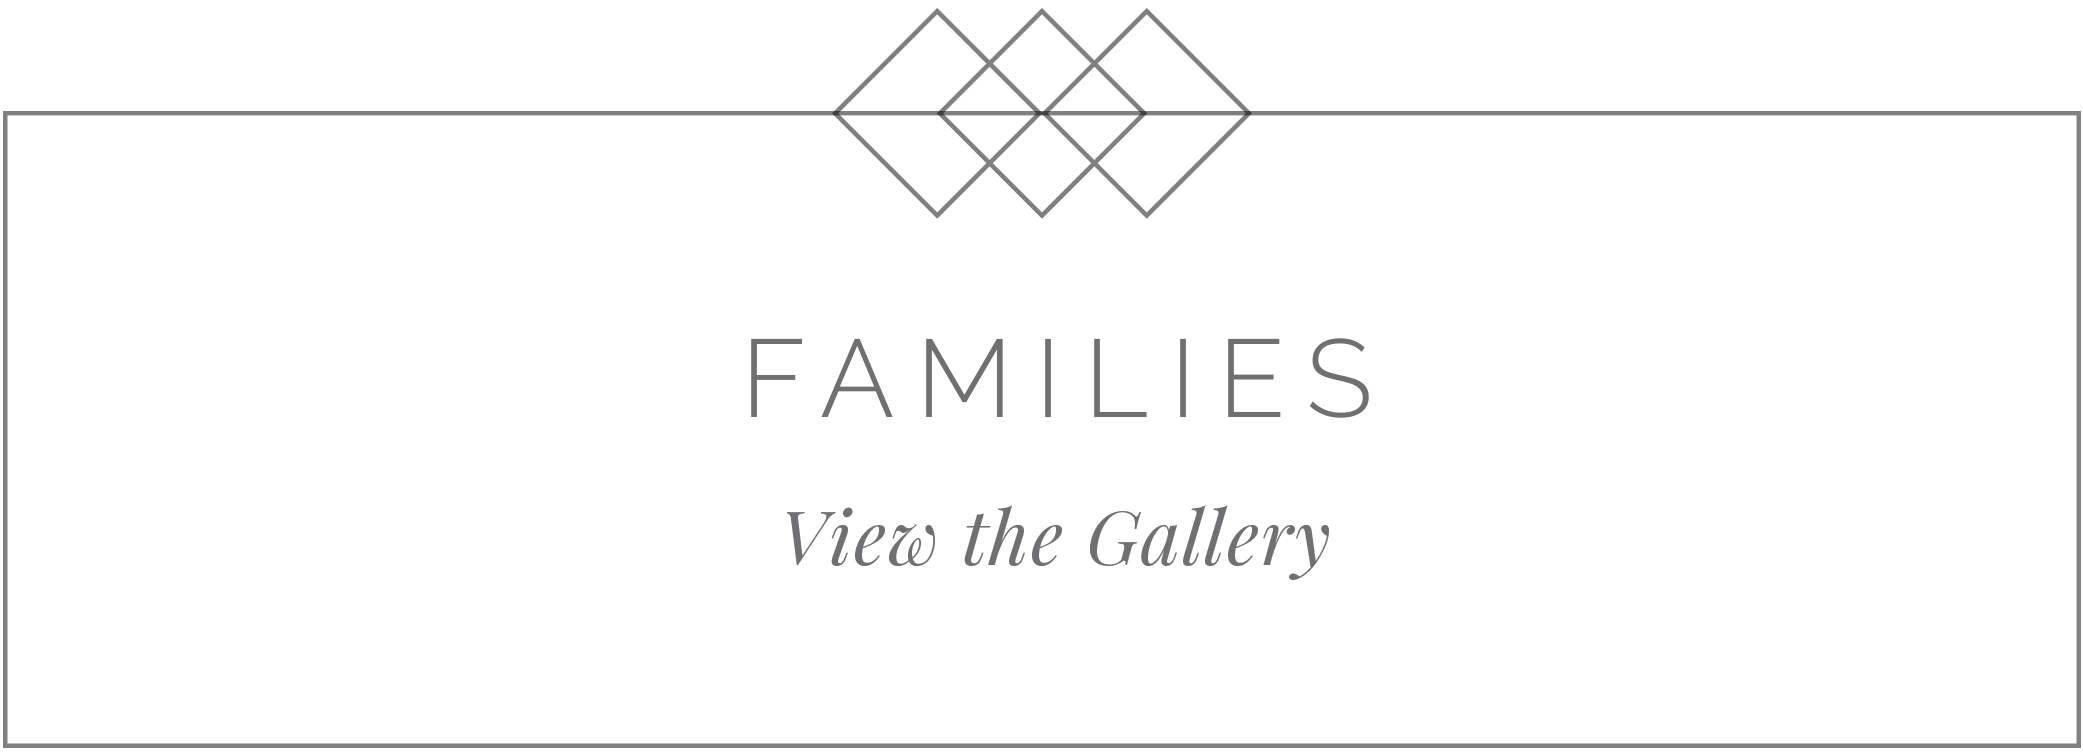 weddinggallerybutton1.png